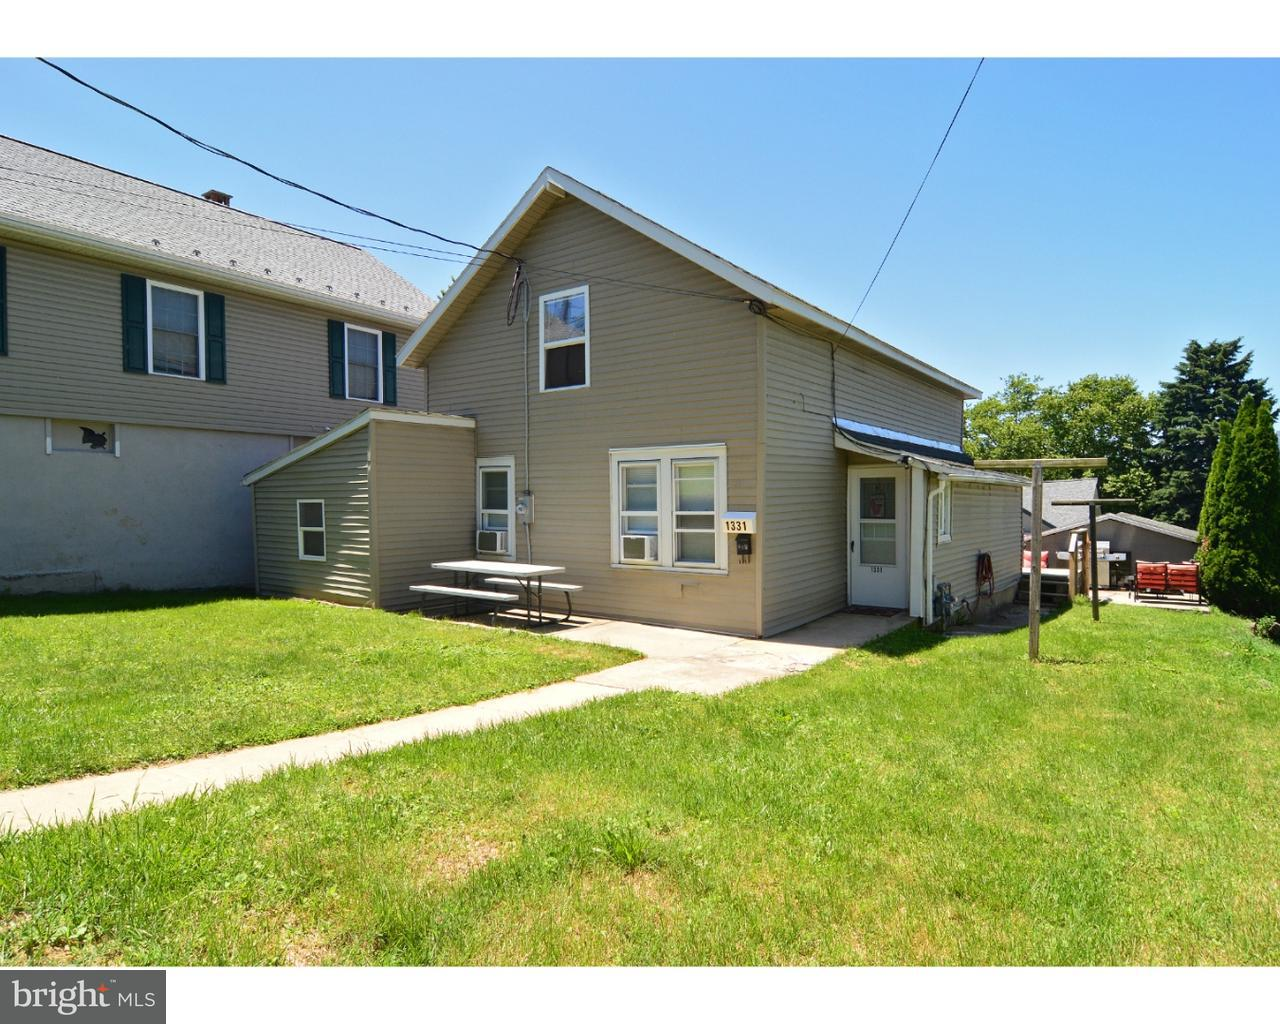 1331 NEW HOLLAND RD, READING - Listed at $135,000, READING